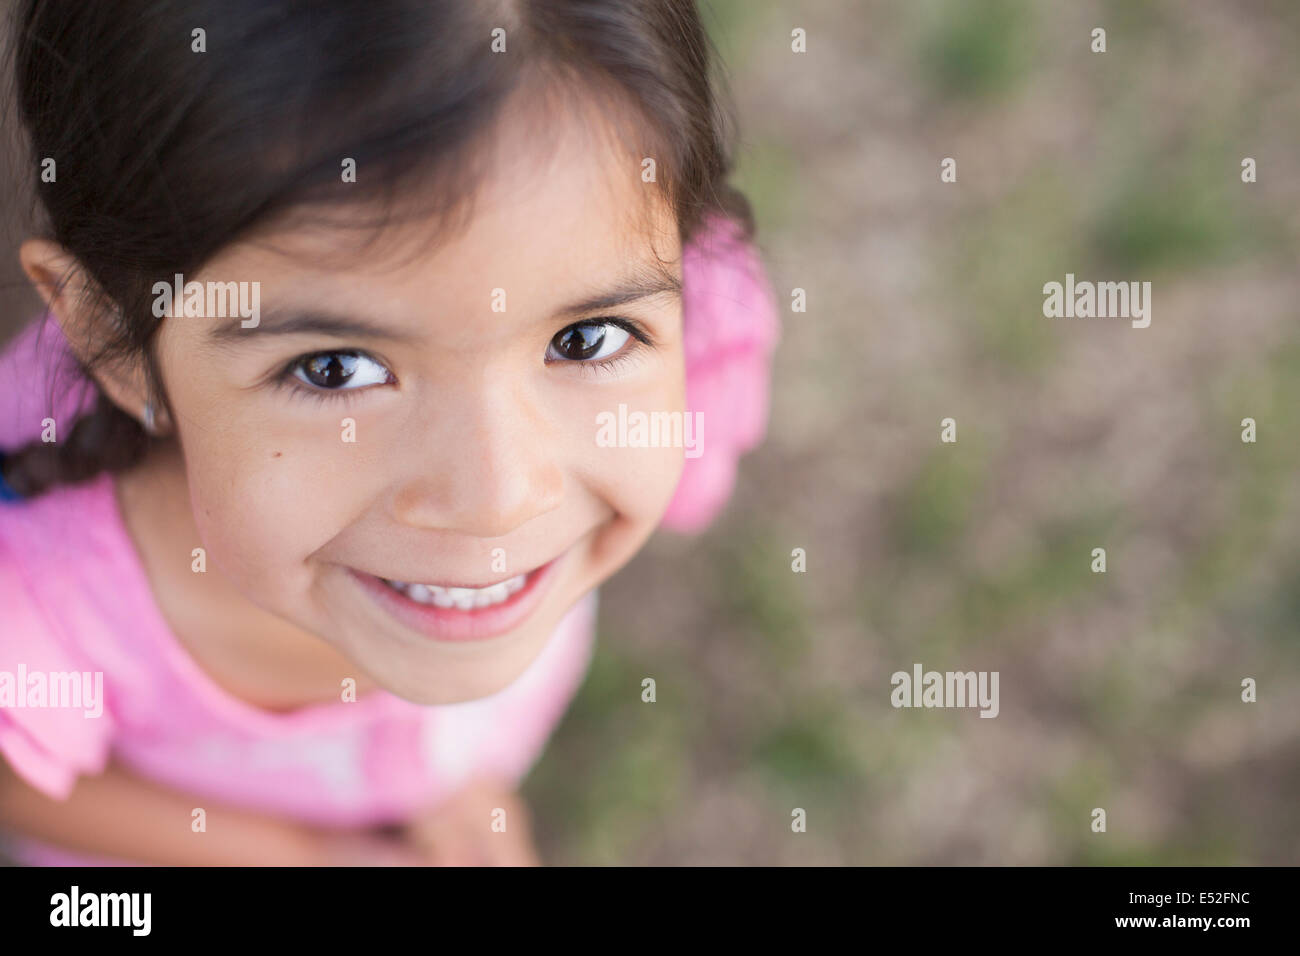 View from above of a child, a girl with dark brown hair and brown eyes. - Stock Image